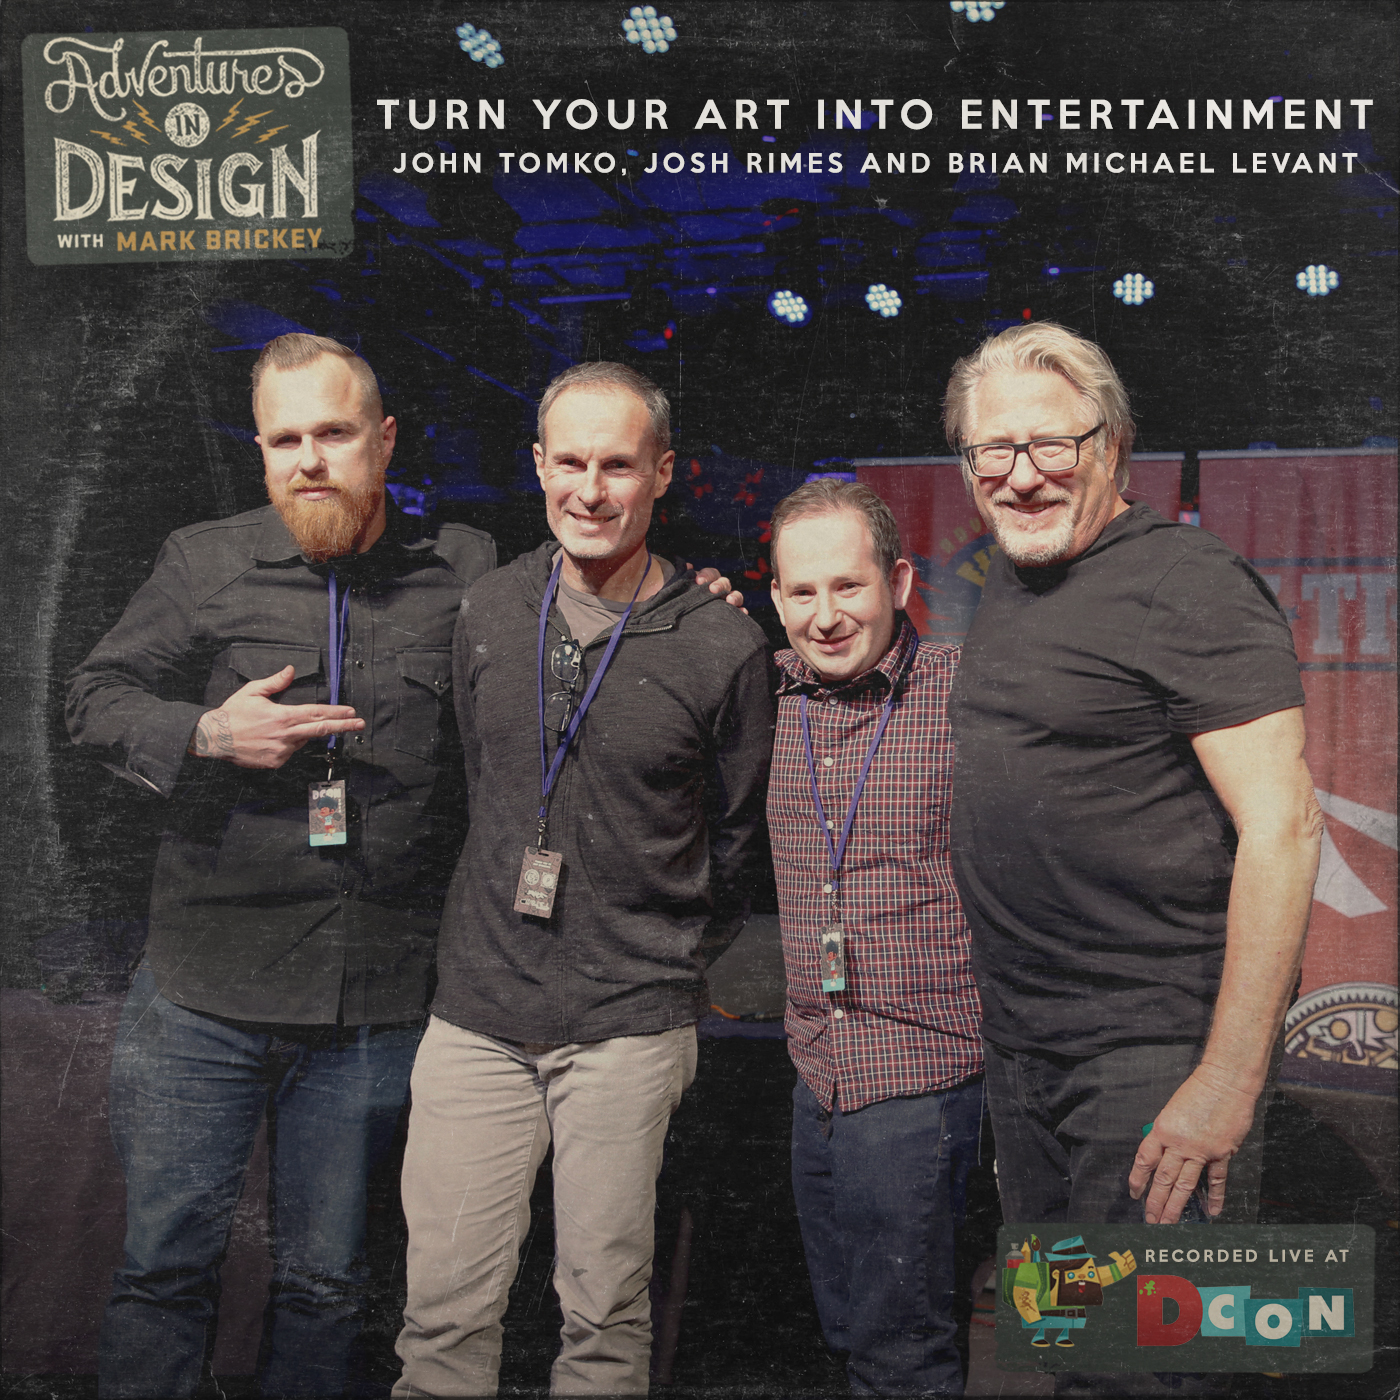 491 - Turn Your Art Into Entertainment with John Tomko, Josh Rimes AND Brian Michael Levant